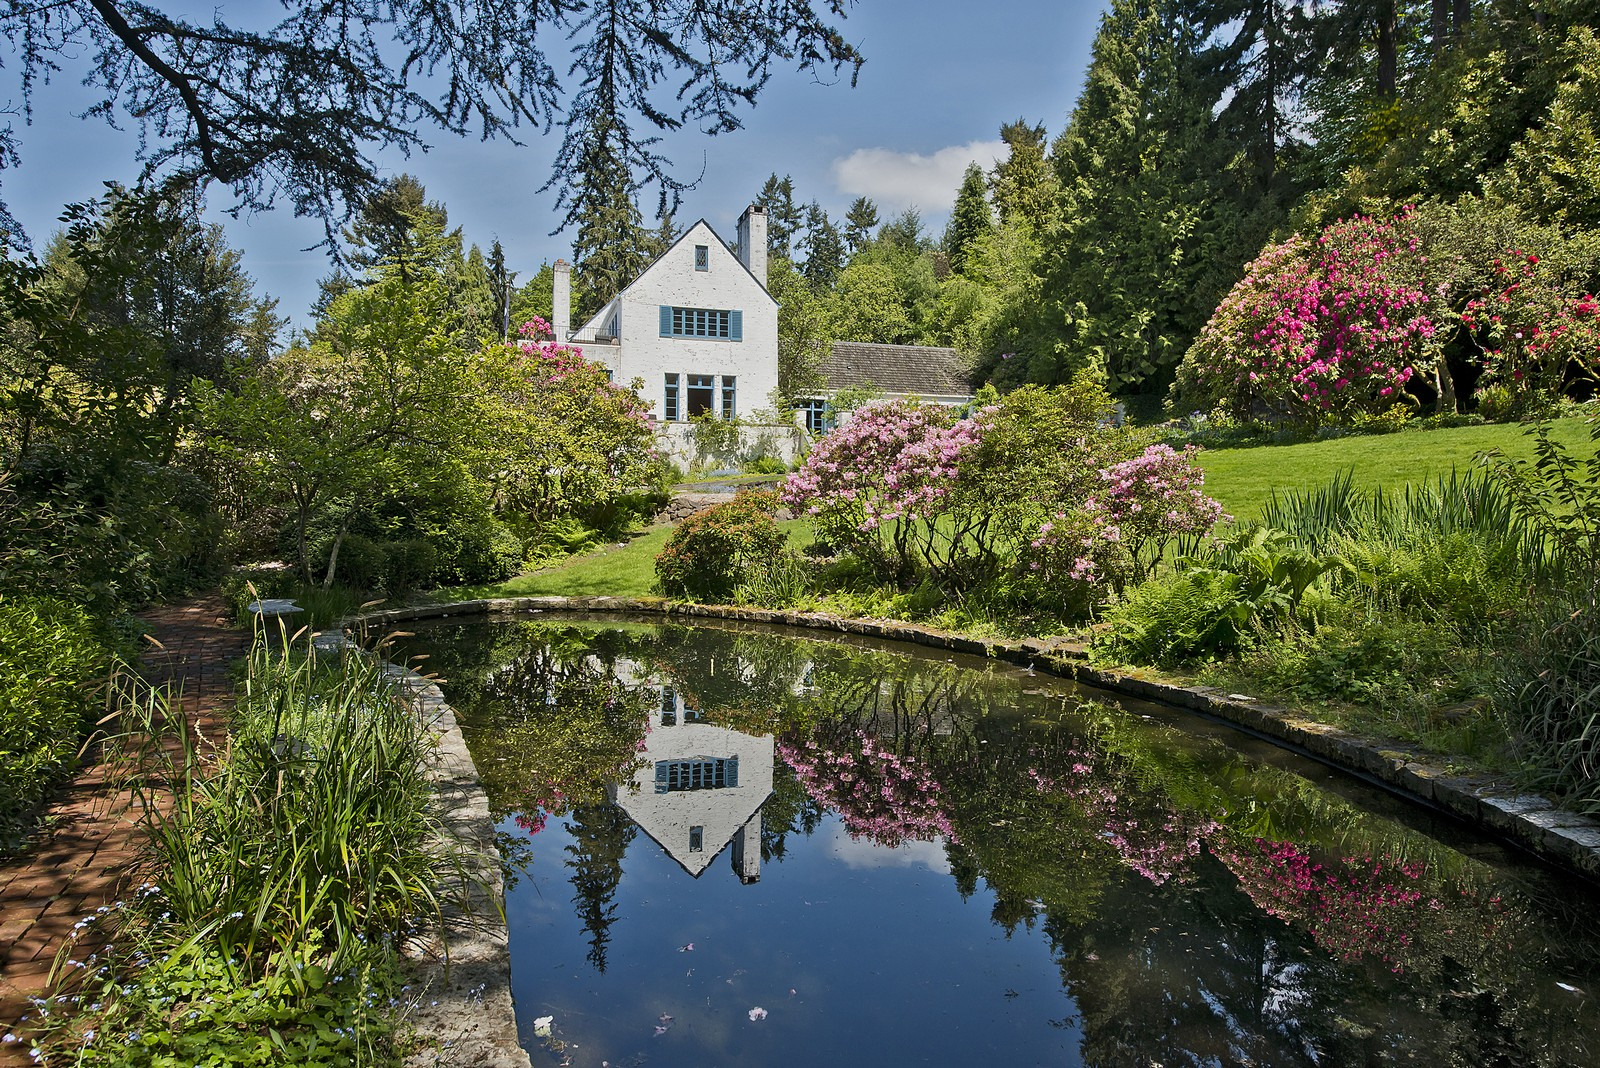 Bonnie Brook Estate  The Highlands  36 NW Cherry Loop Drive, Seattle Offered at $4,500,000   LEARN MORE